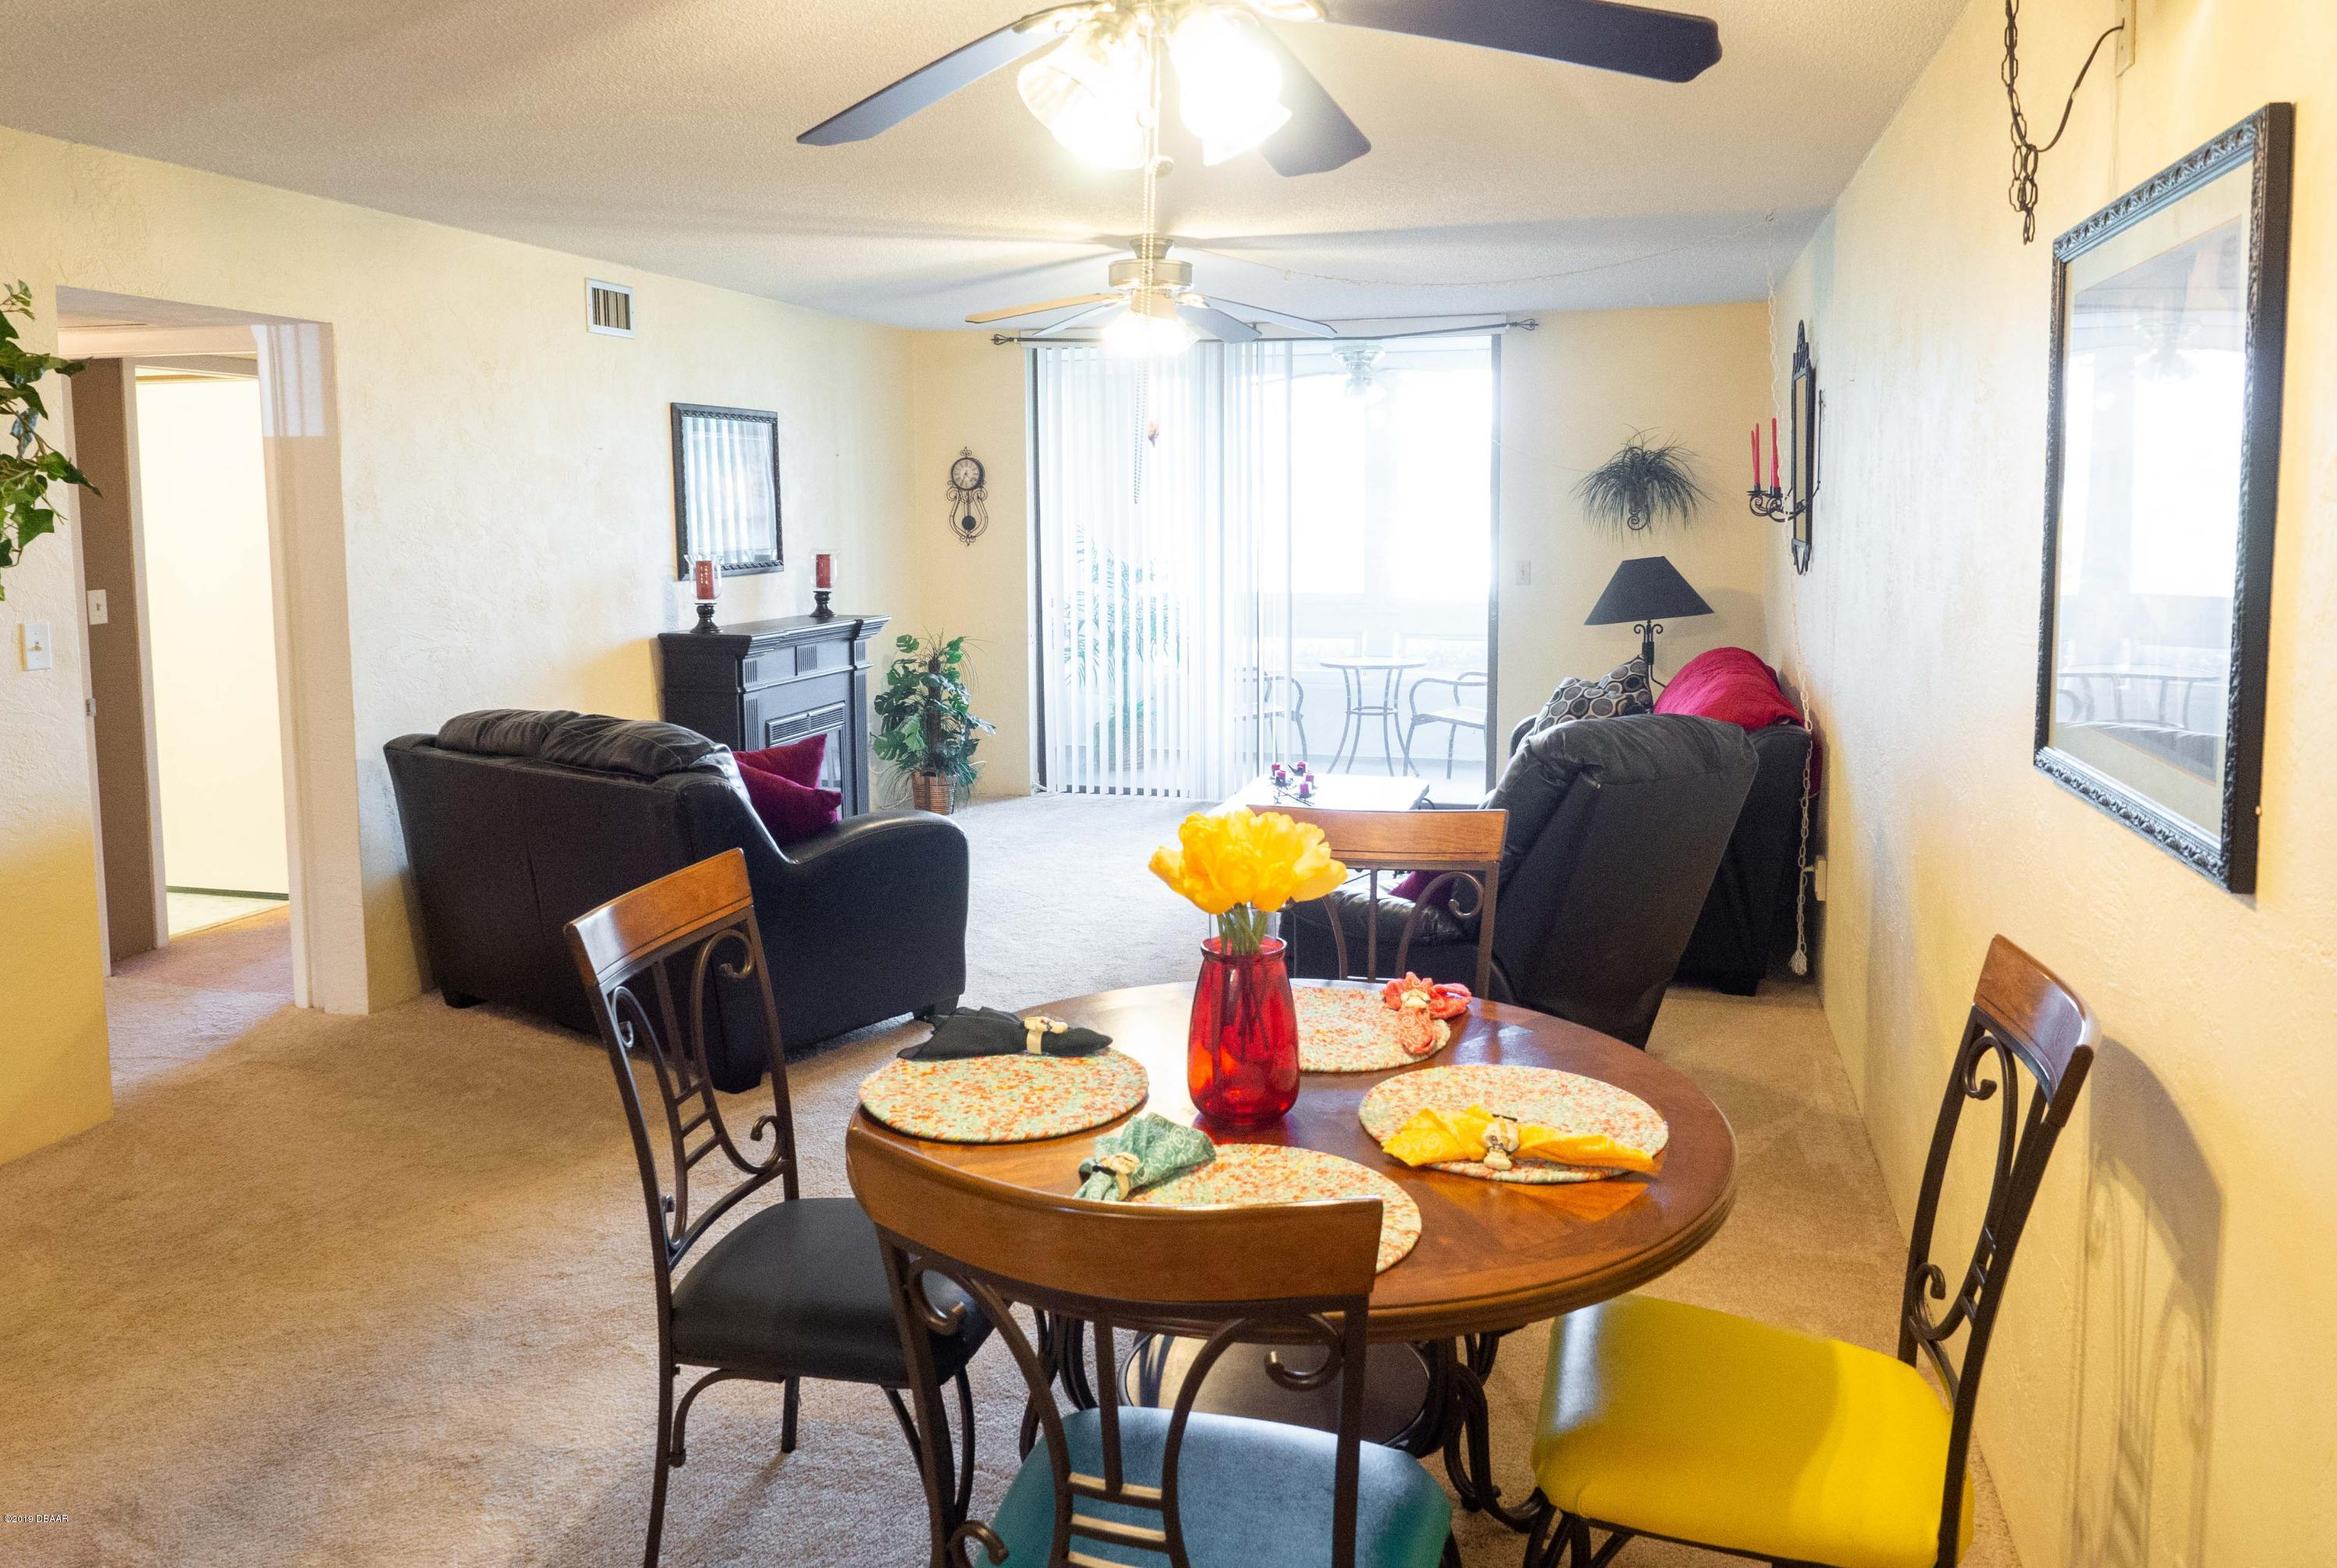 327 Wilder Daytona Beach - 3